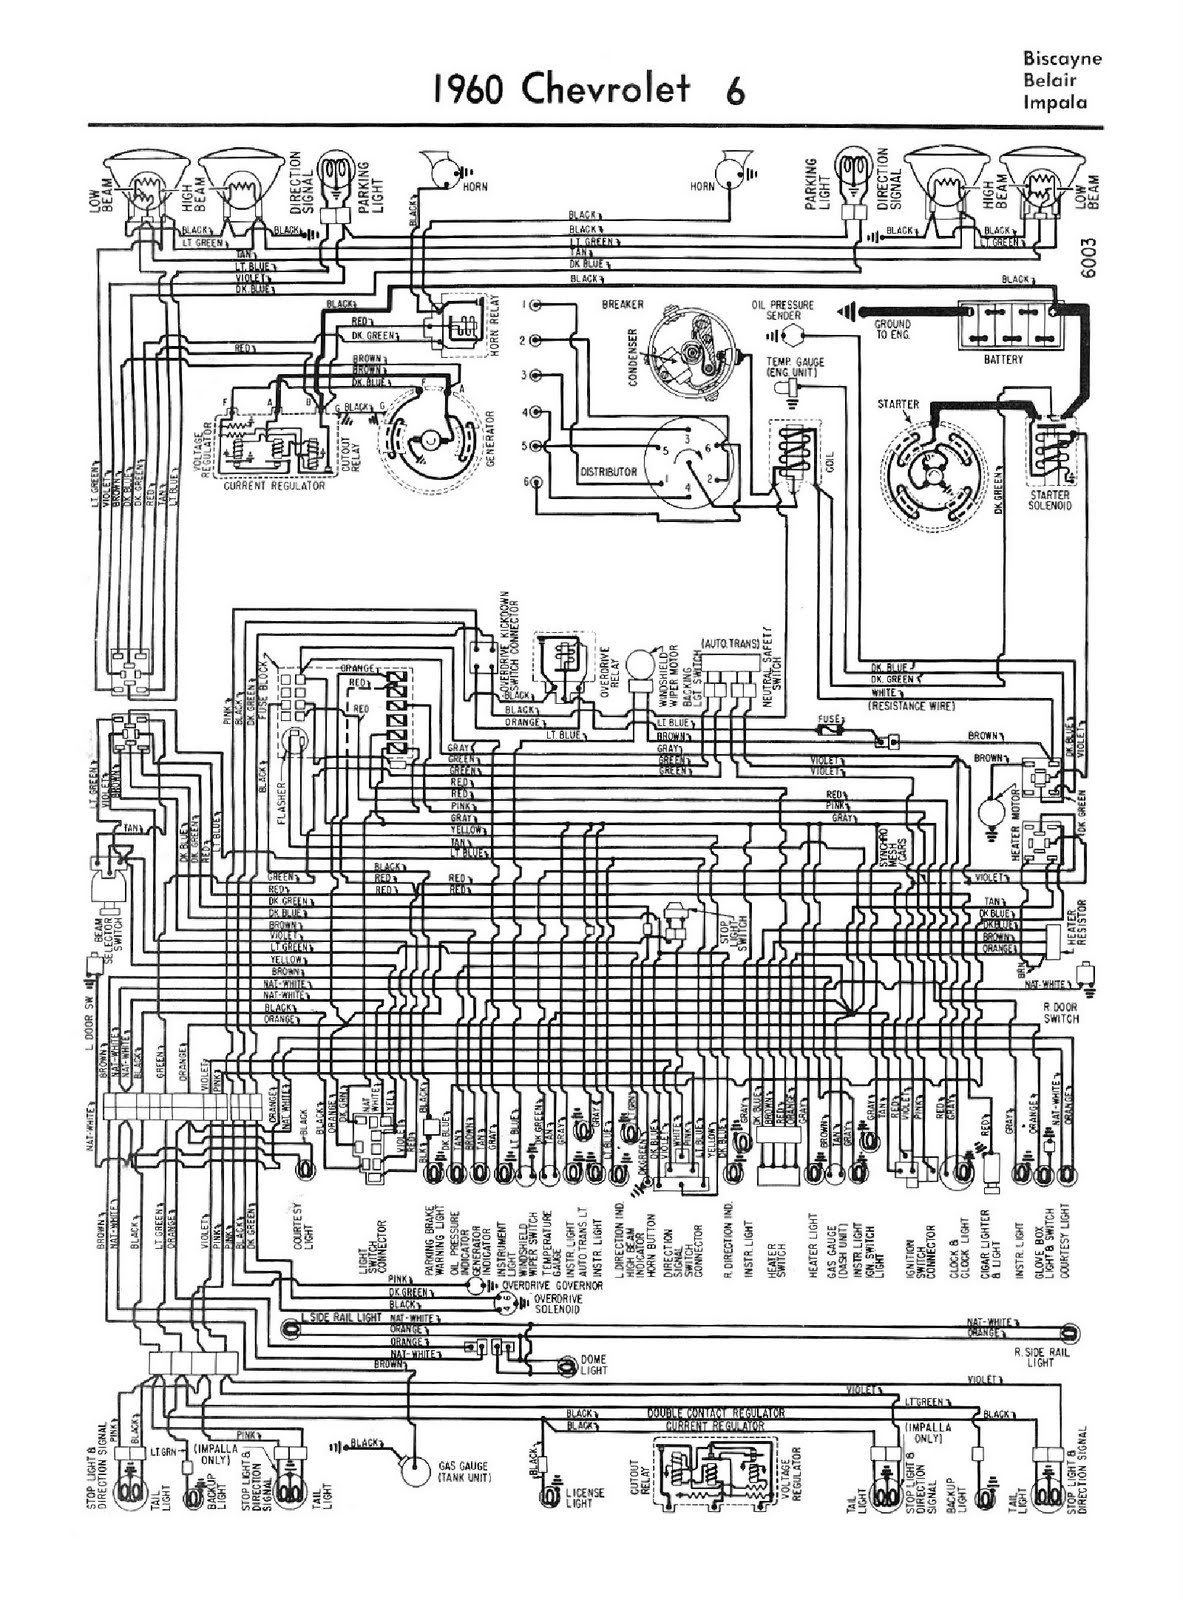 1960_Chevy_V6_Biscayne_Belair_Impala free auto wiring diagram 1960 chevrolet 6 biscayne, belair, or 2011 impala wiring diagram at mr168.co